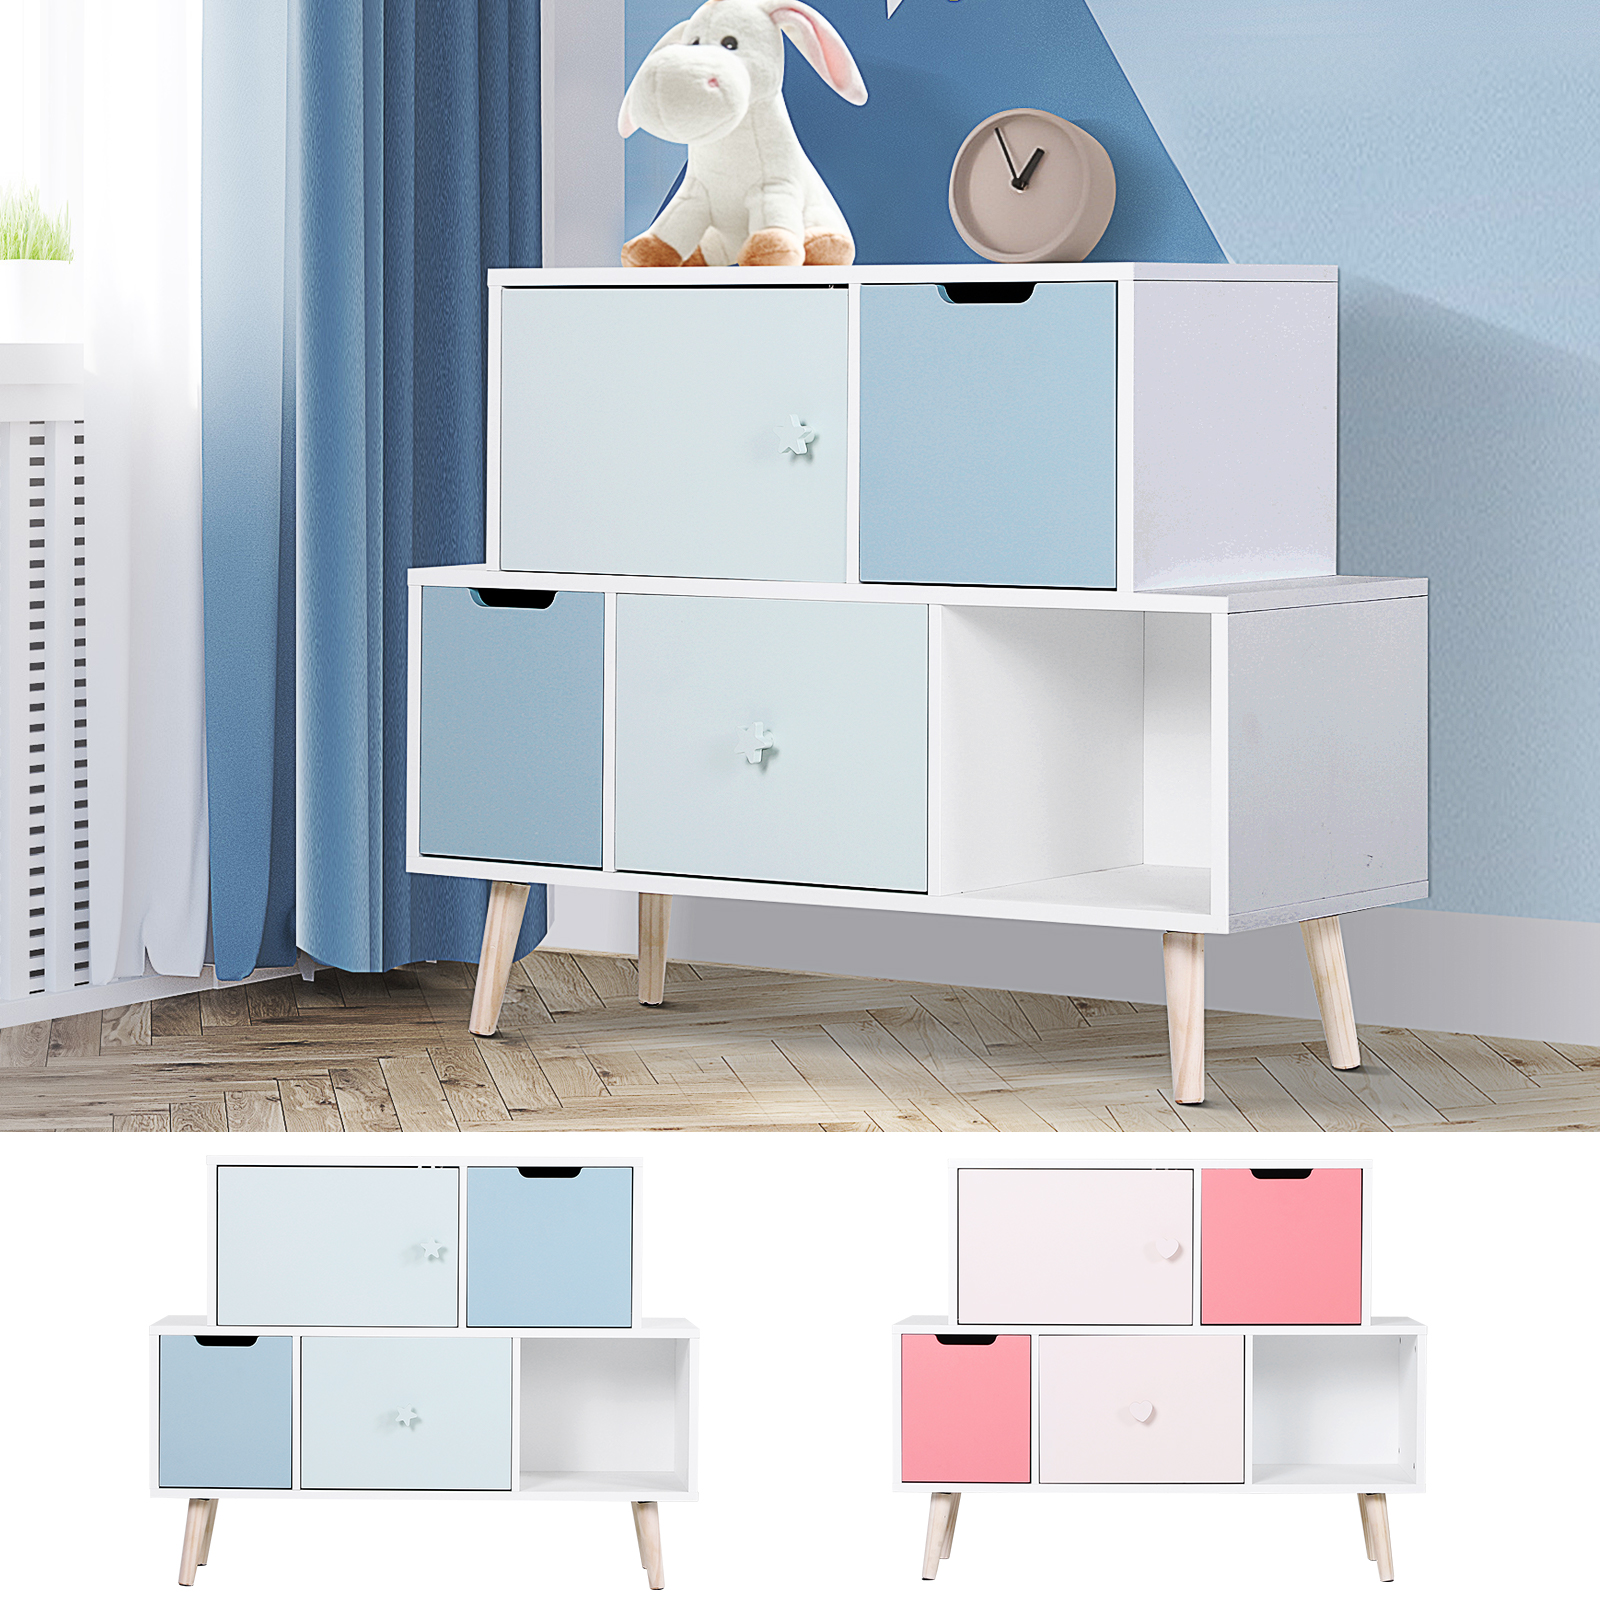 Picture of: Baby Cabinet Storage Units 3 Drawer Cute Toy Storage Kids Bedroom Furniture Ebay